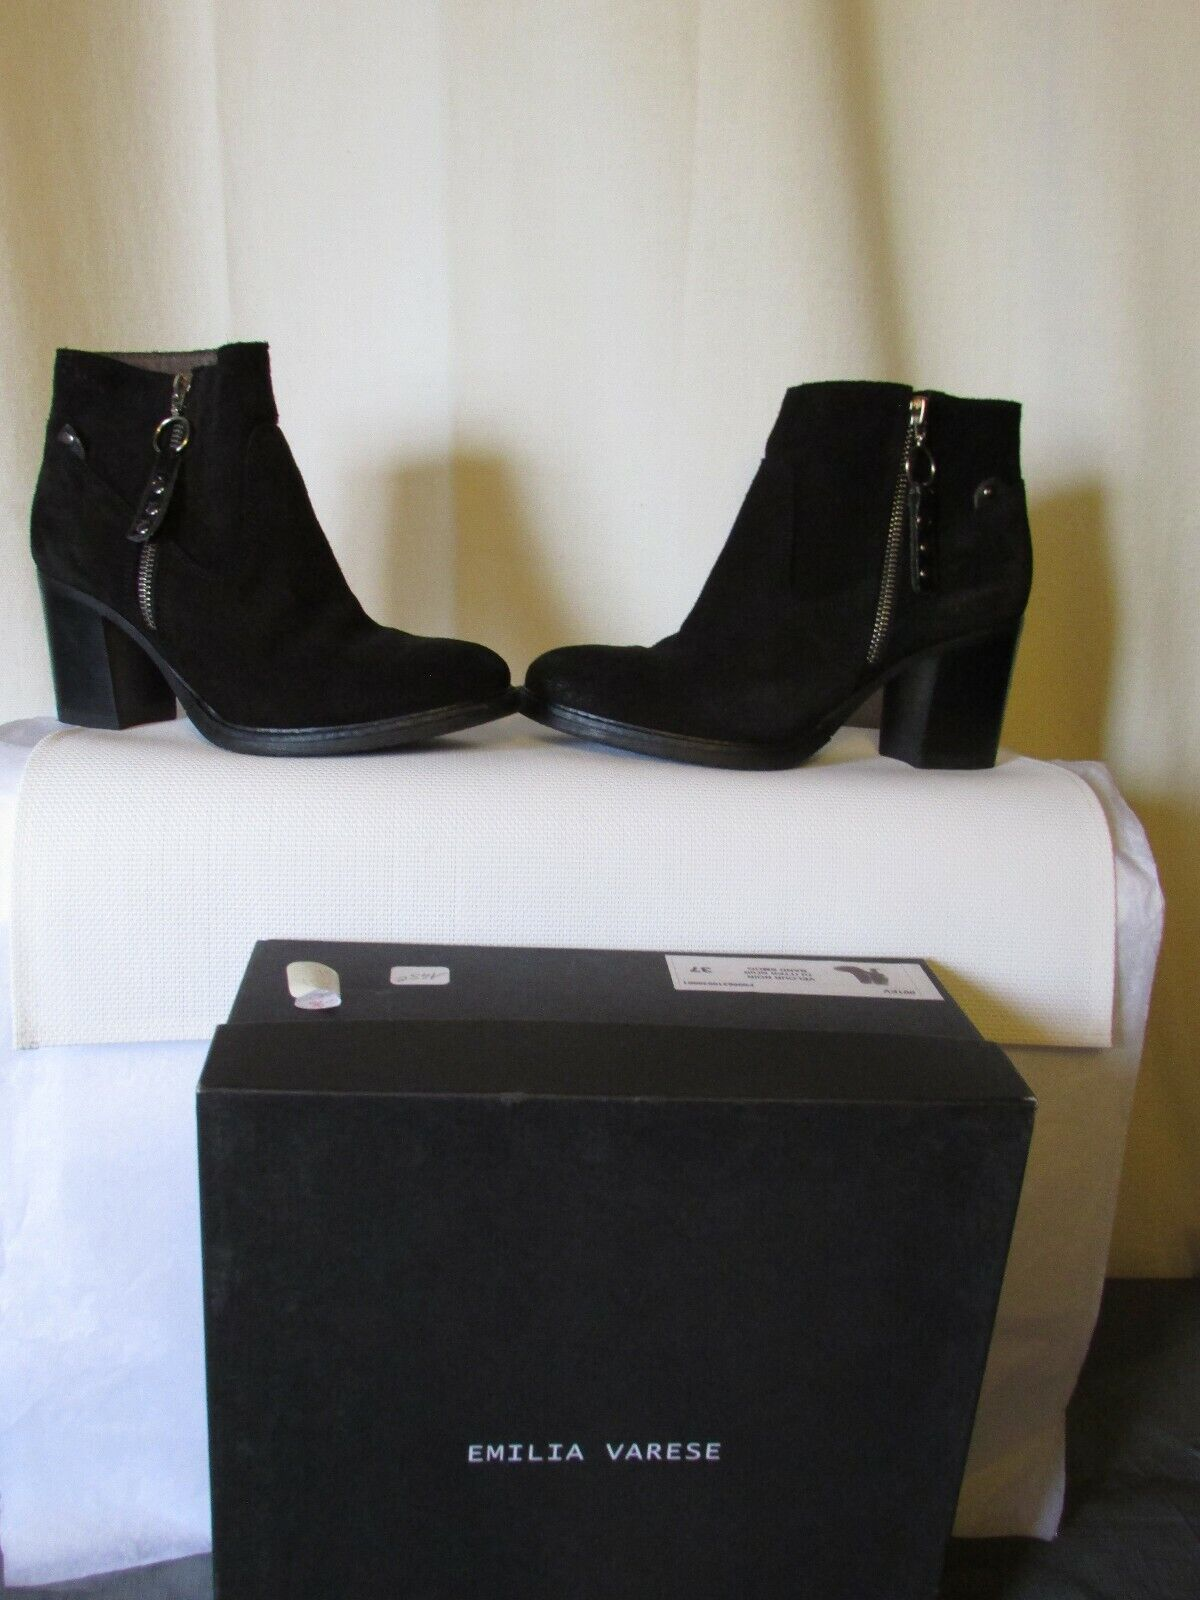 Boots bottines emilia varese daim black pointure 37